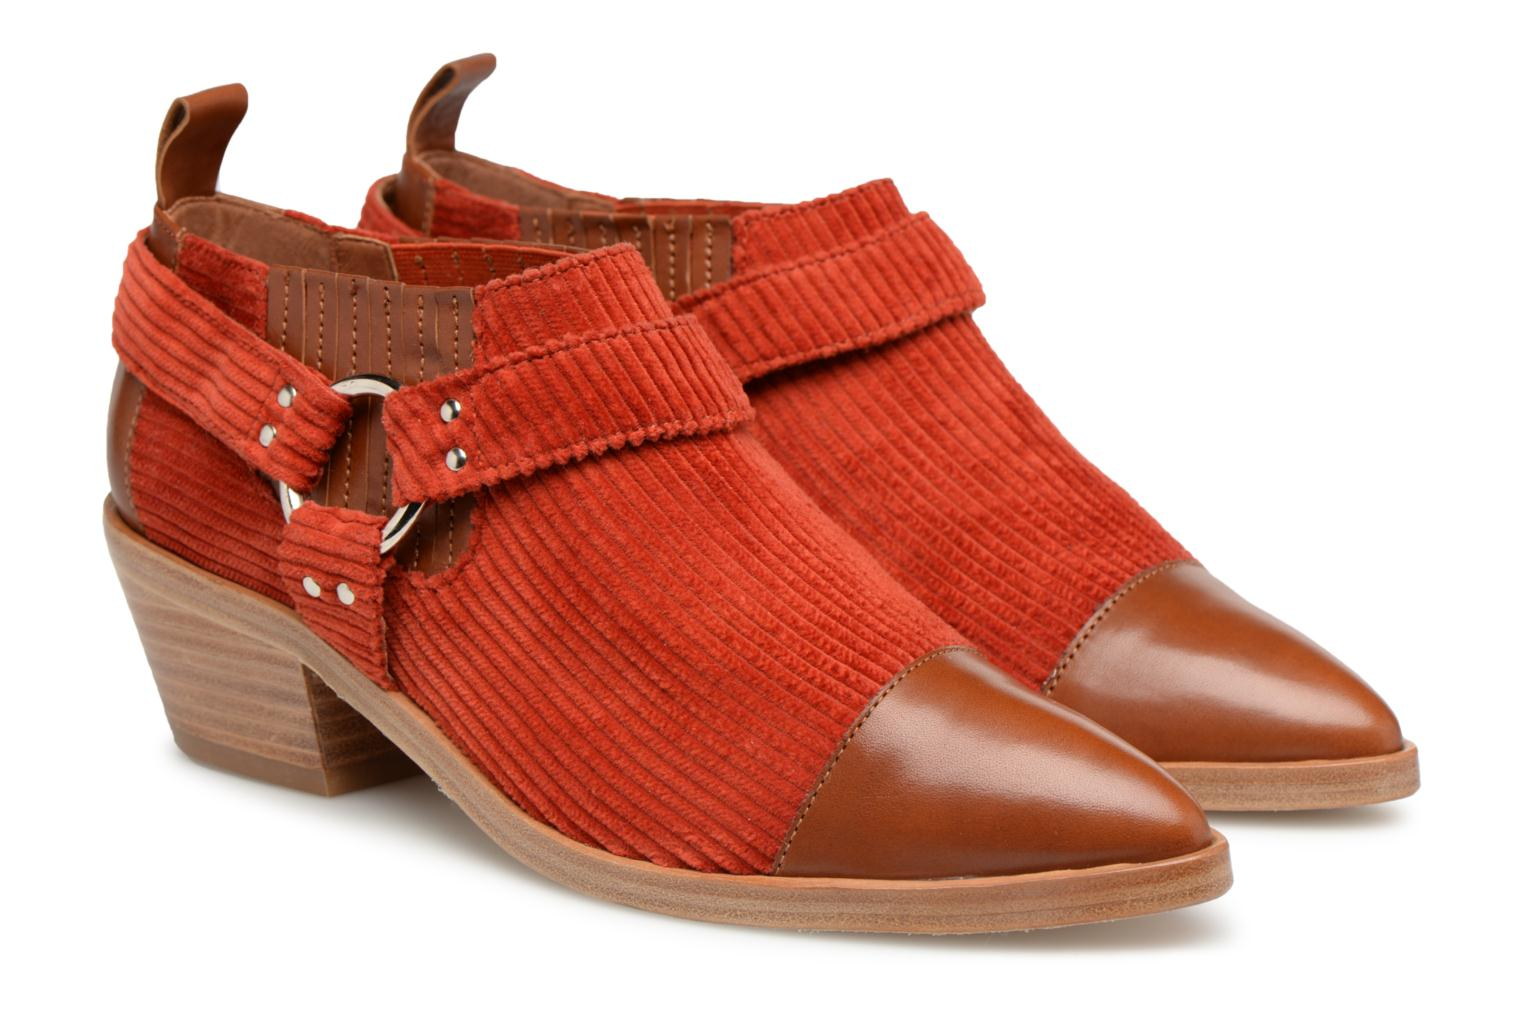 Rilasciato Da Sarenza Rilasciato Da Sarenza X Valentine Boots Gauthier Bruin T5KNsLL